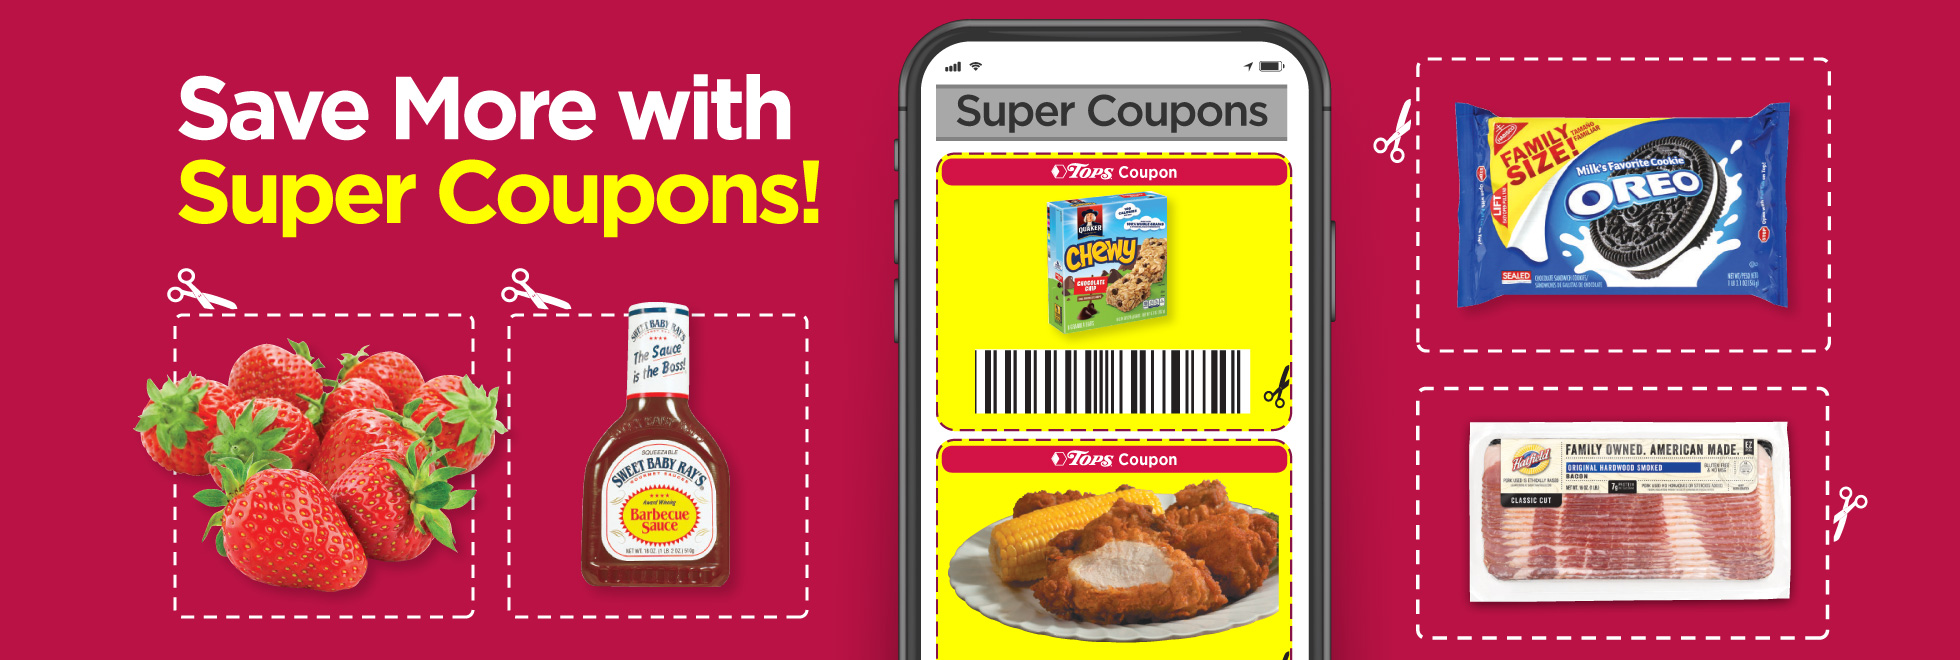 Tops Super 			Coupon Savings